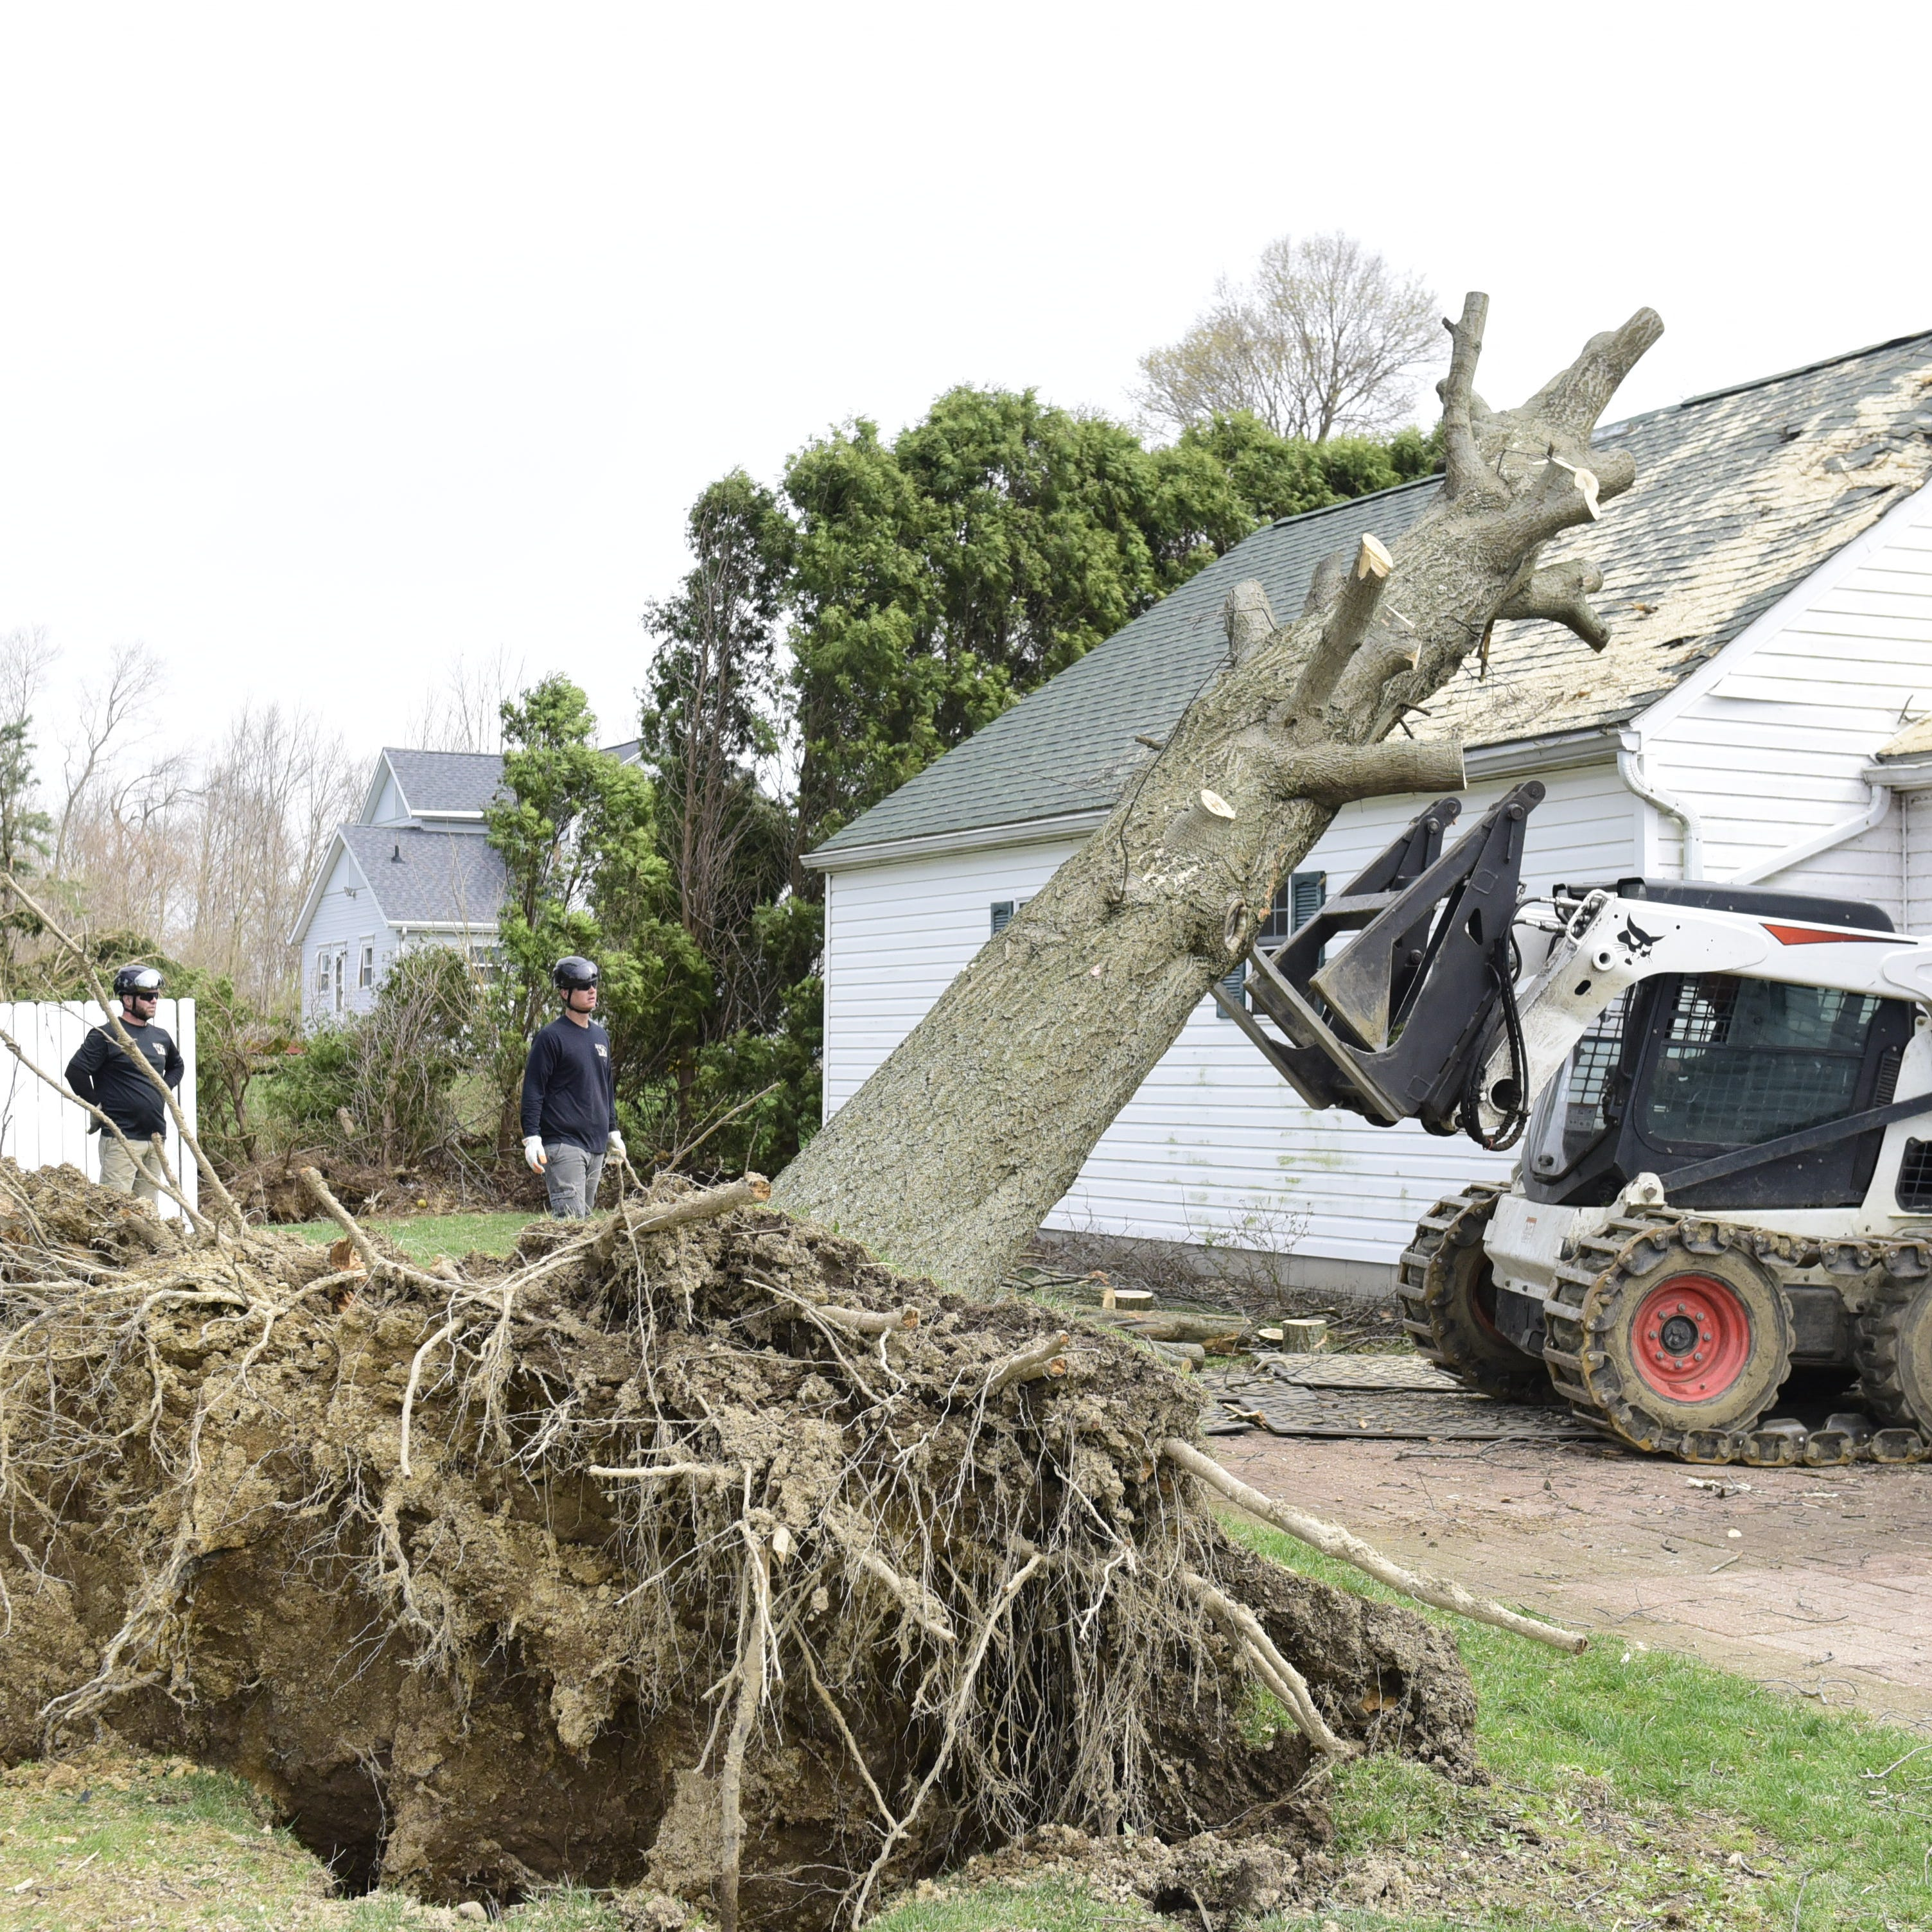 Tornado toll: 107 structures affected, 16 destroyed